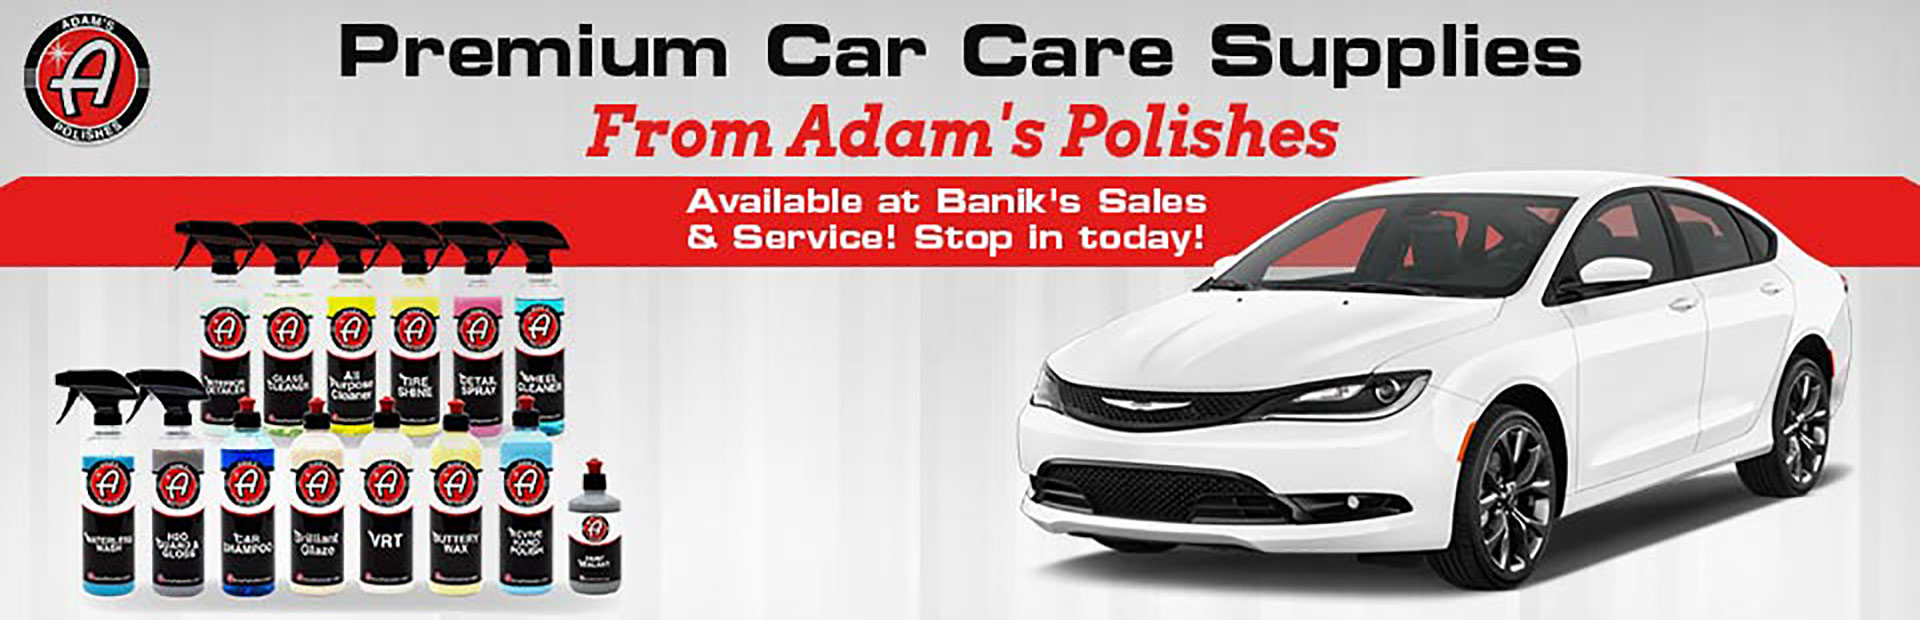 Banik's Sales & Service carries premium car care supplies from Adam's Polishes! Click here to contact us.